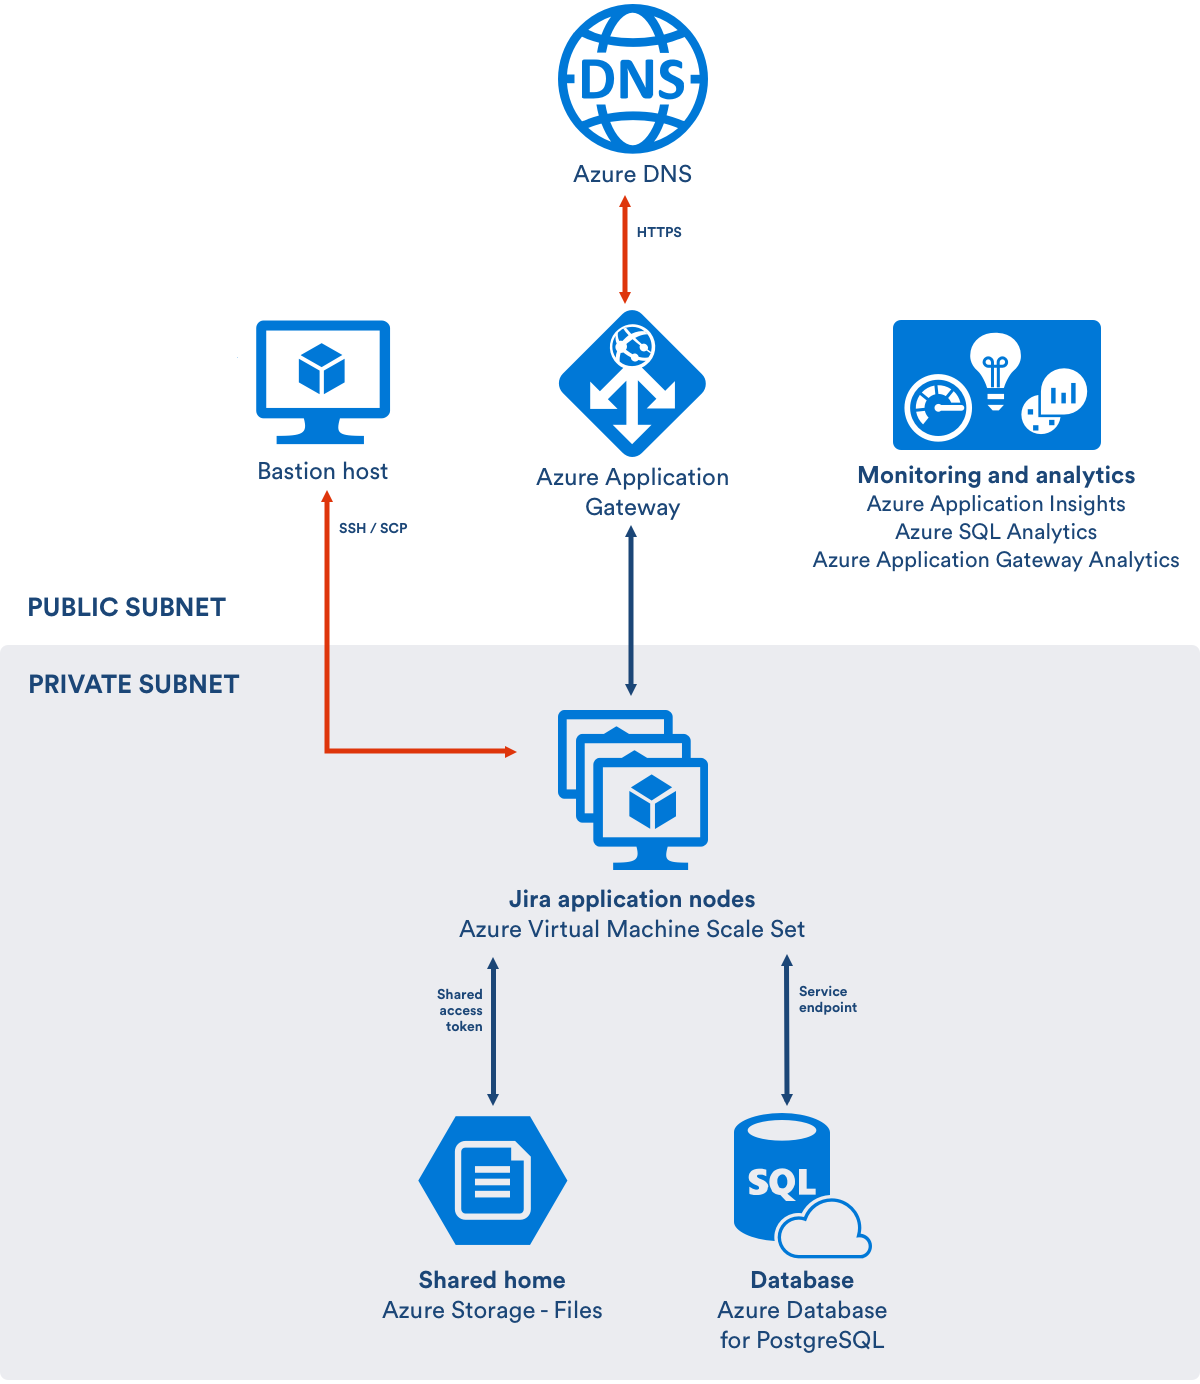 Getting started with JIRA Data Center on Azure - Atlassian